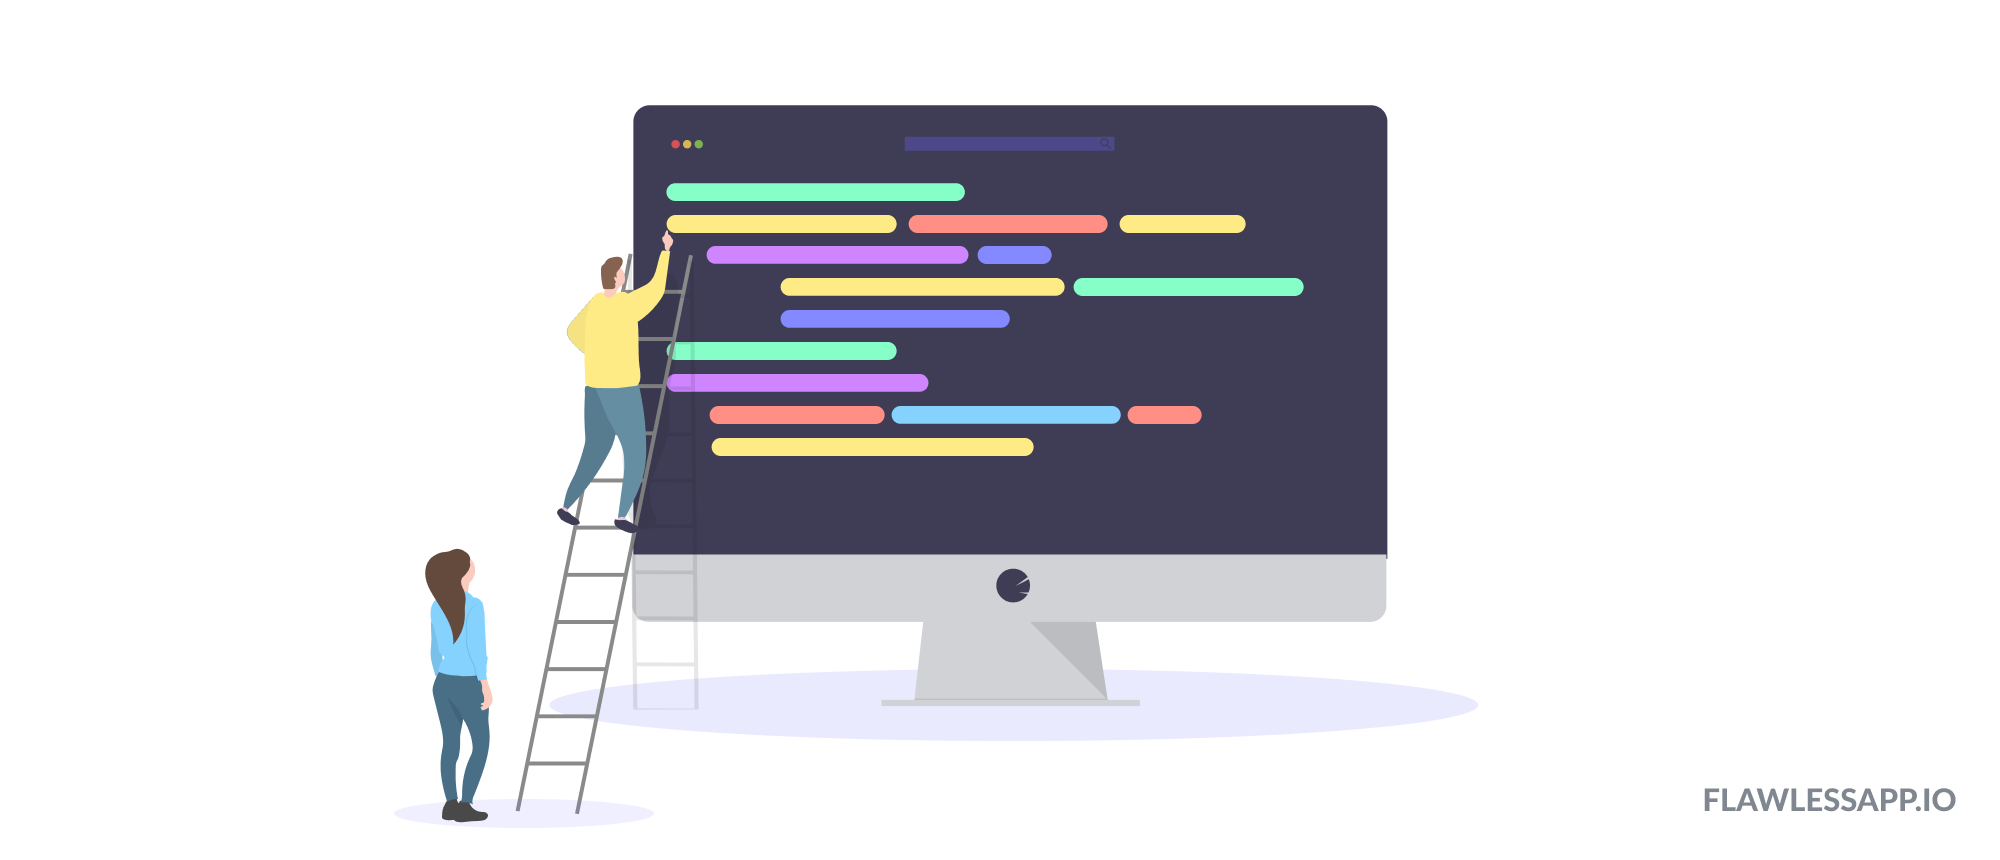 Improve your iOS team's productivity by building features as frameworks